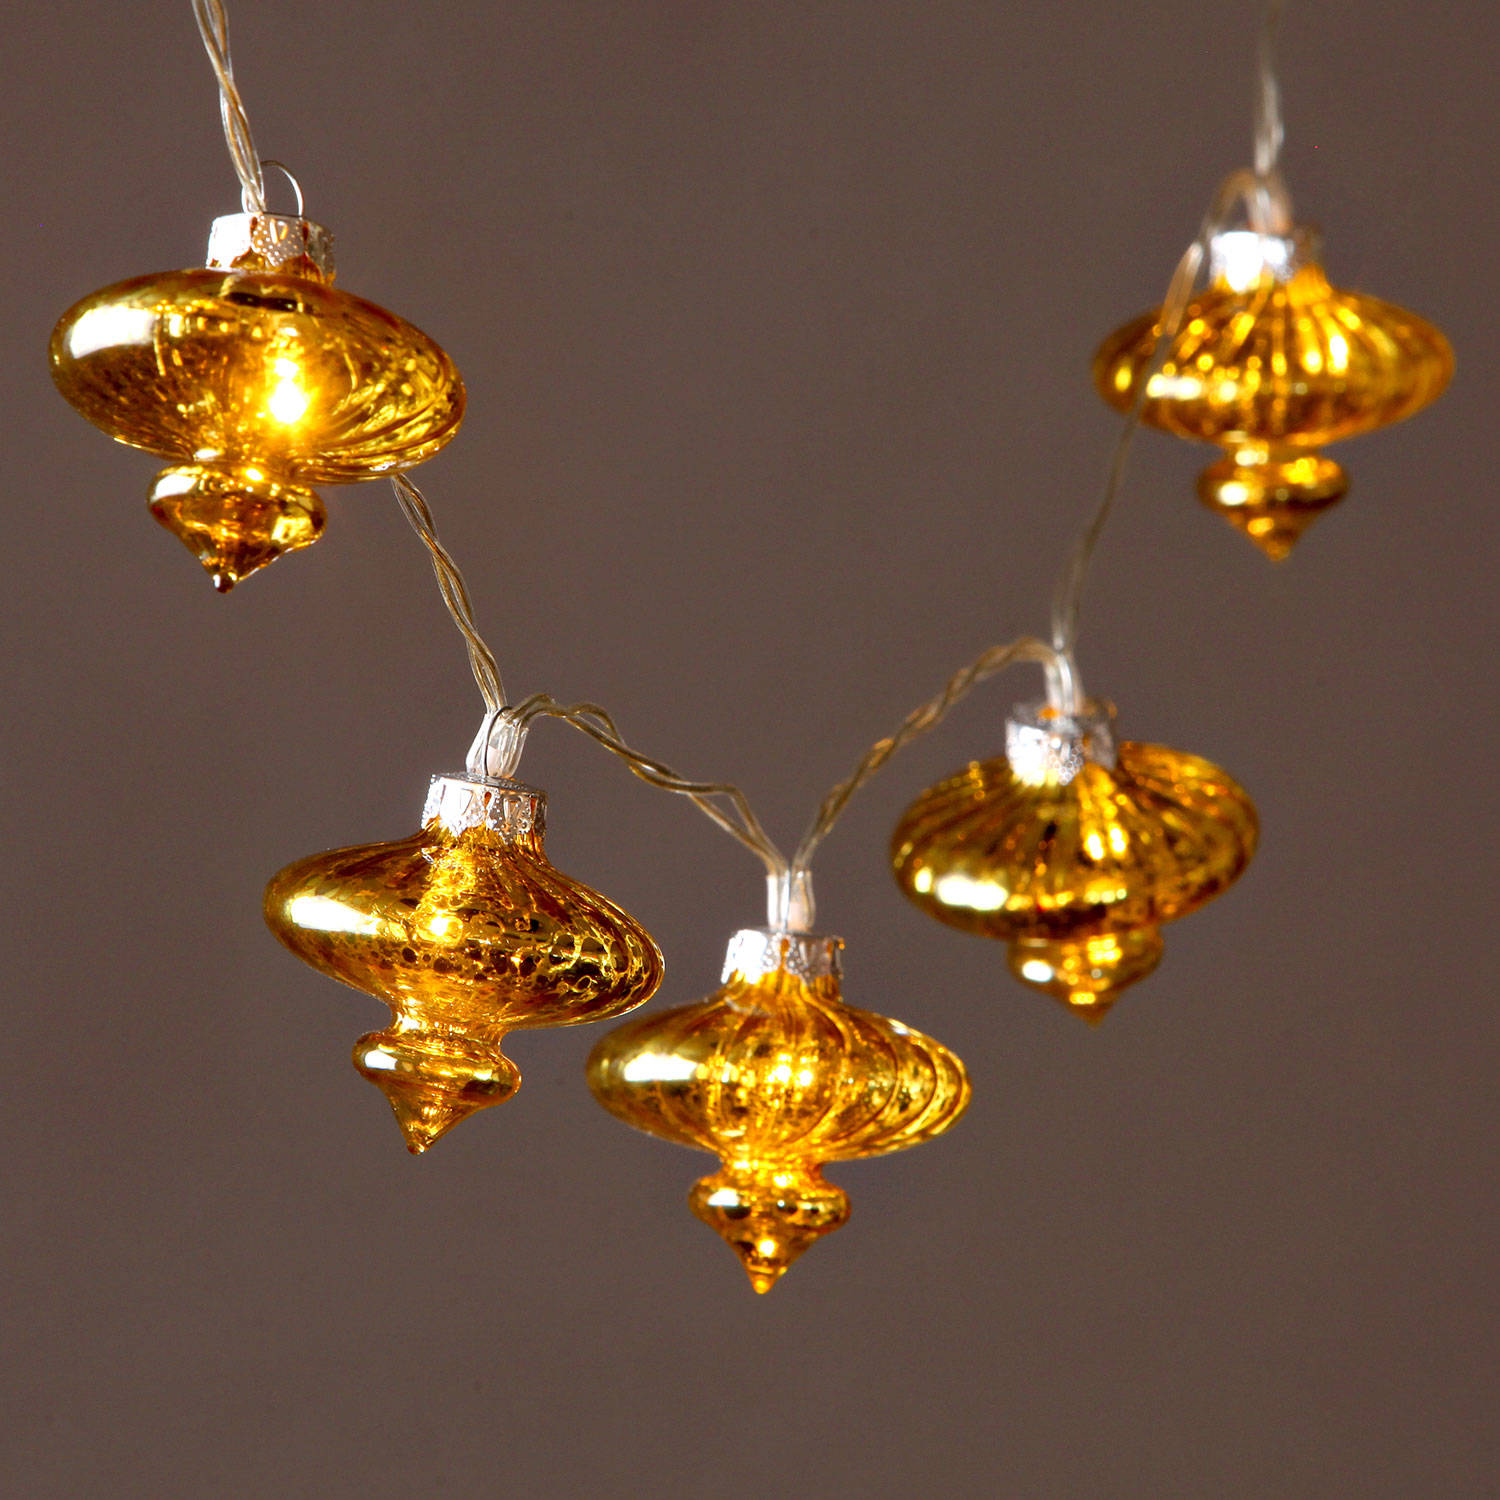 Gold Mercury String Lights : Lights.com Lit Decor String Lights Decorative Vintage Gold Glass Lantern Battery String ...